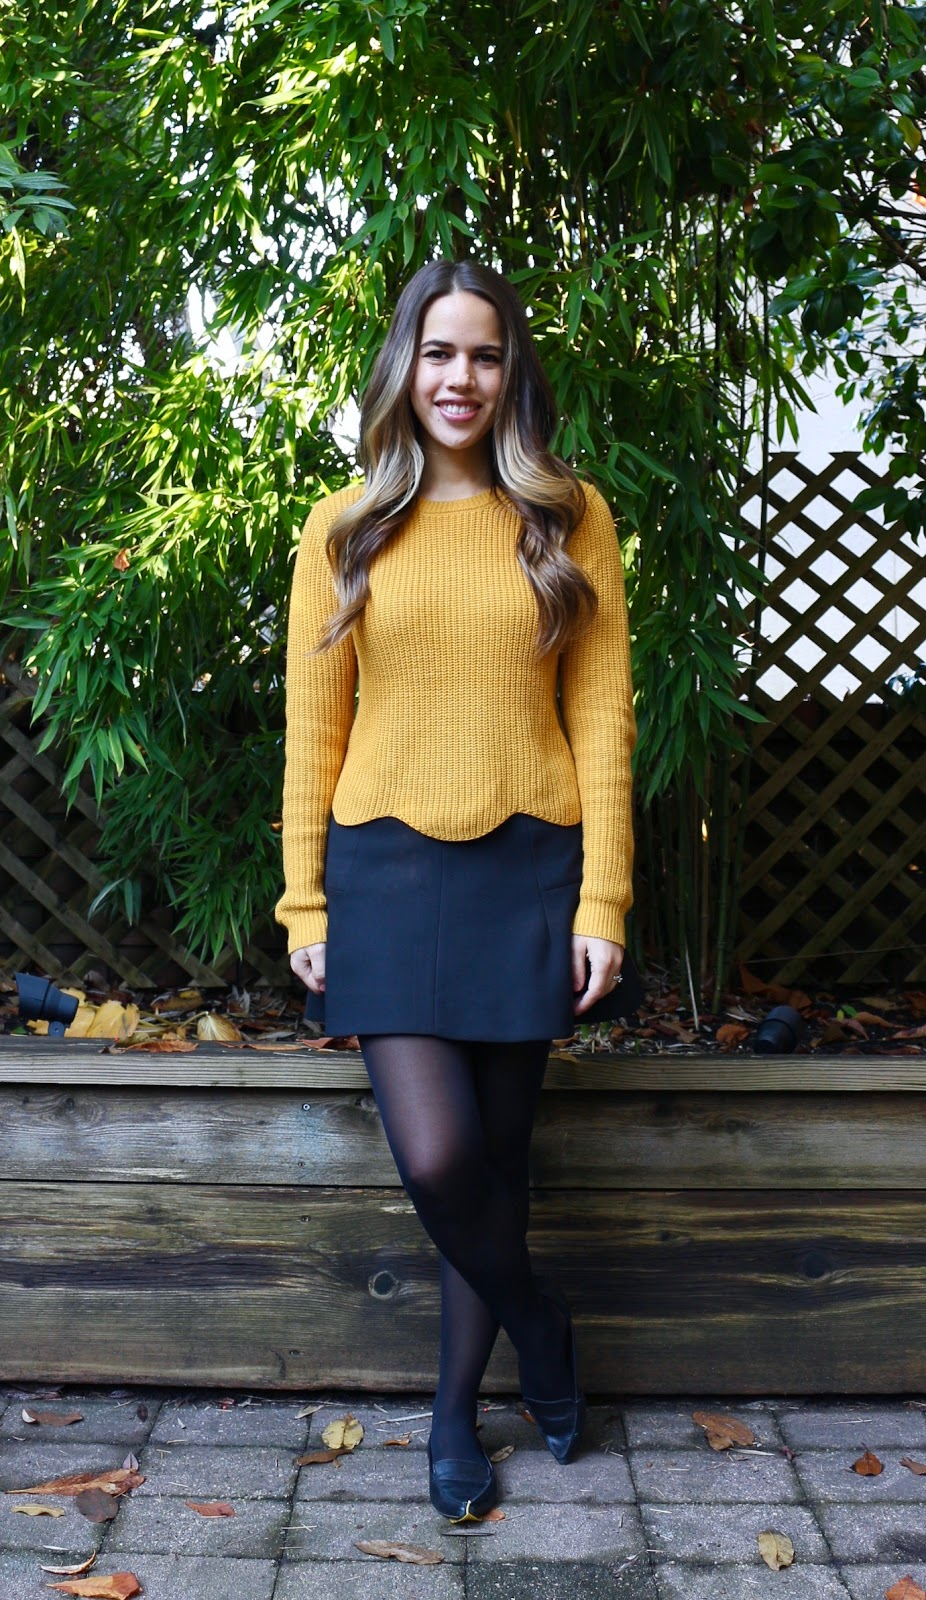 Jules in Flats - Yellow Scalloped Sweater with Skater Skirt (Business Casual Fall Workwear on a Budget)